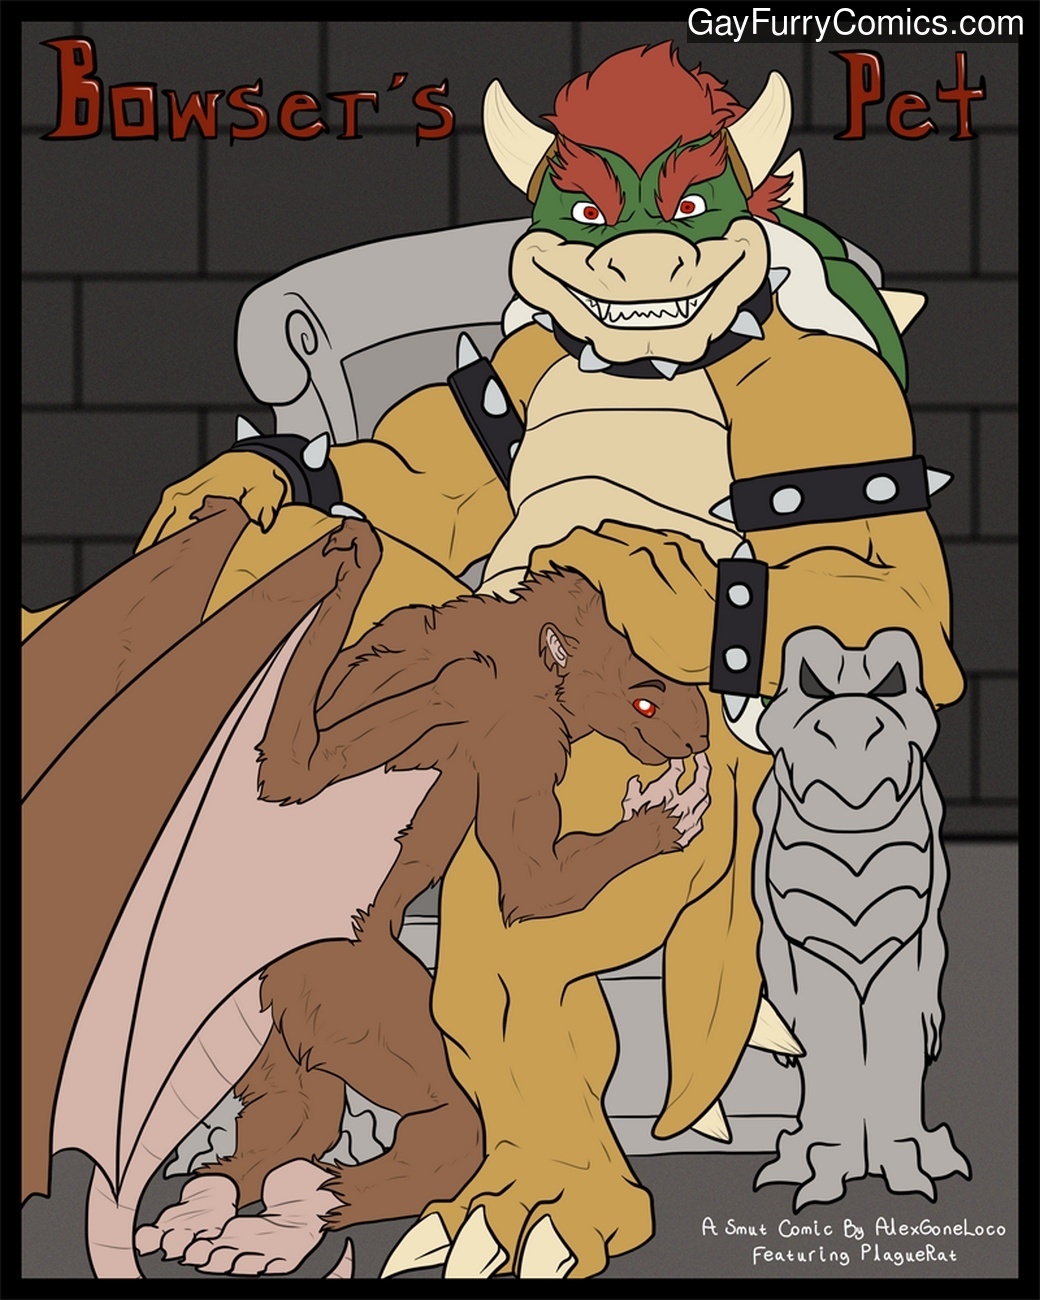 Animal Condum Porn bowser's pet 1 gay furries - gay furry comics